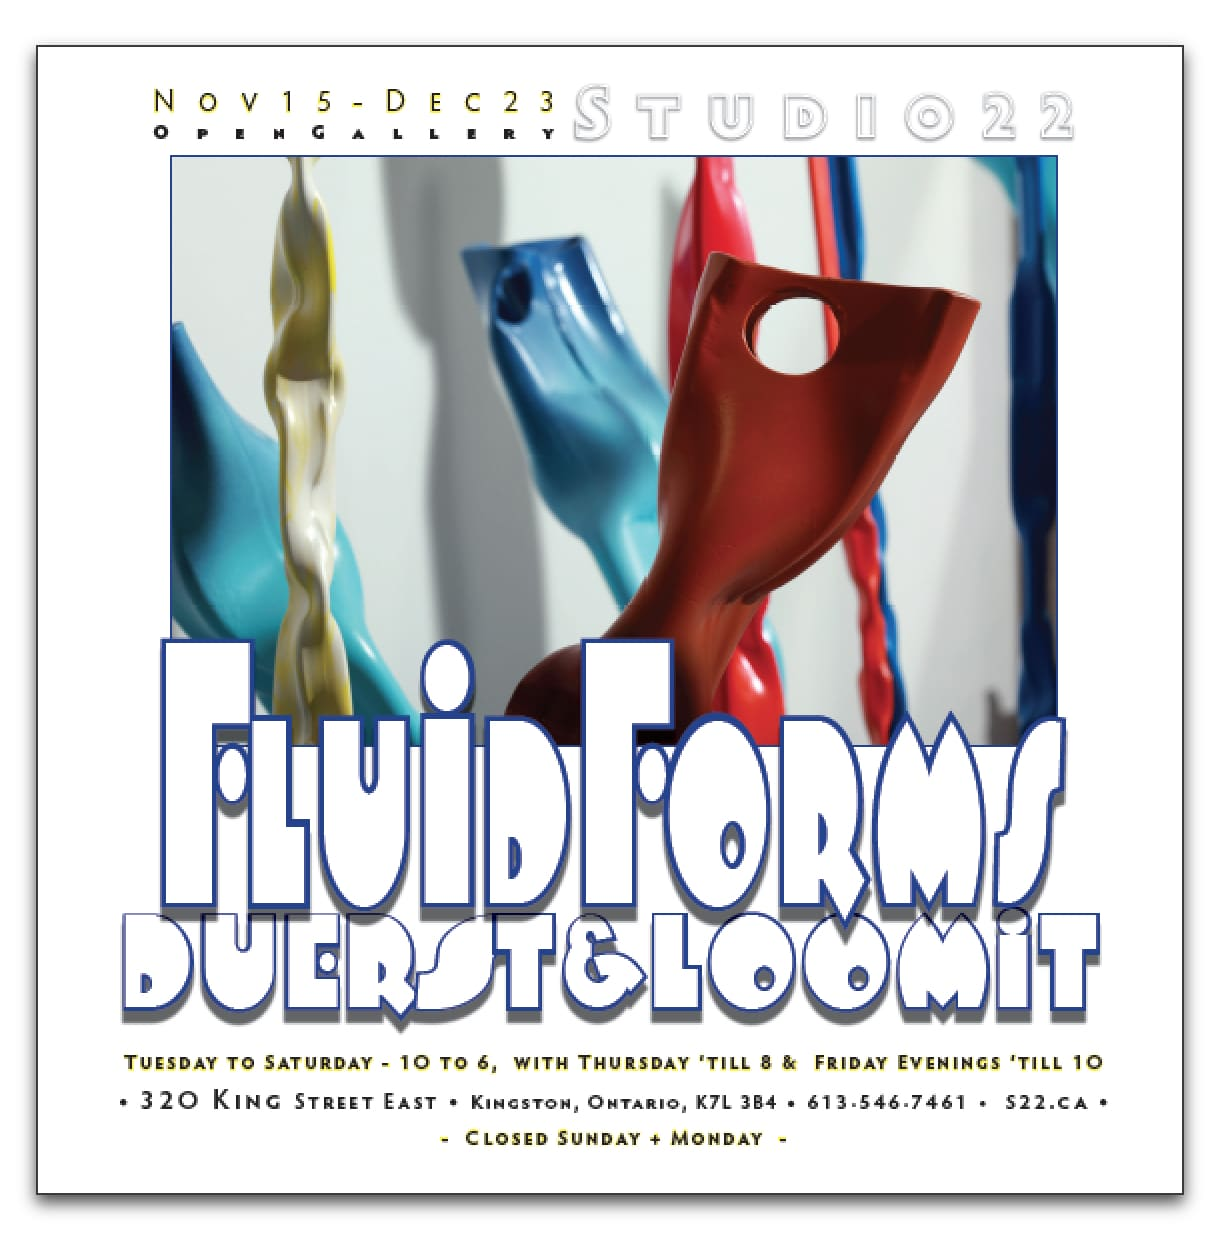 Fluid Forms ~ Duerst & Loomit